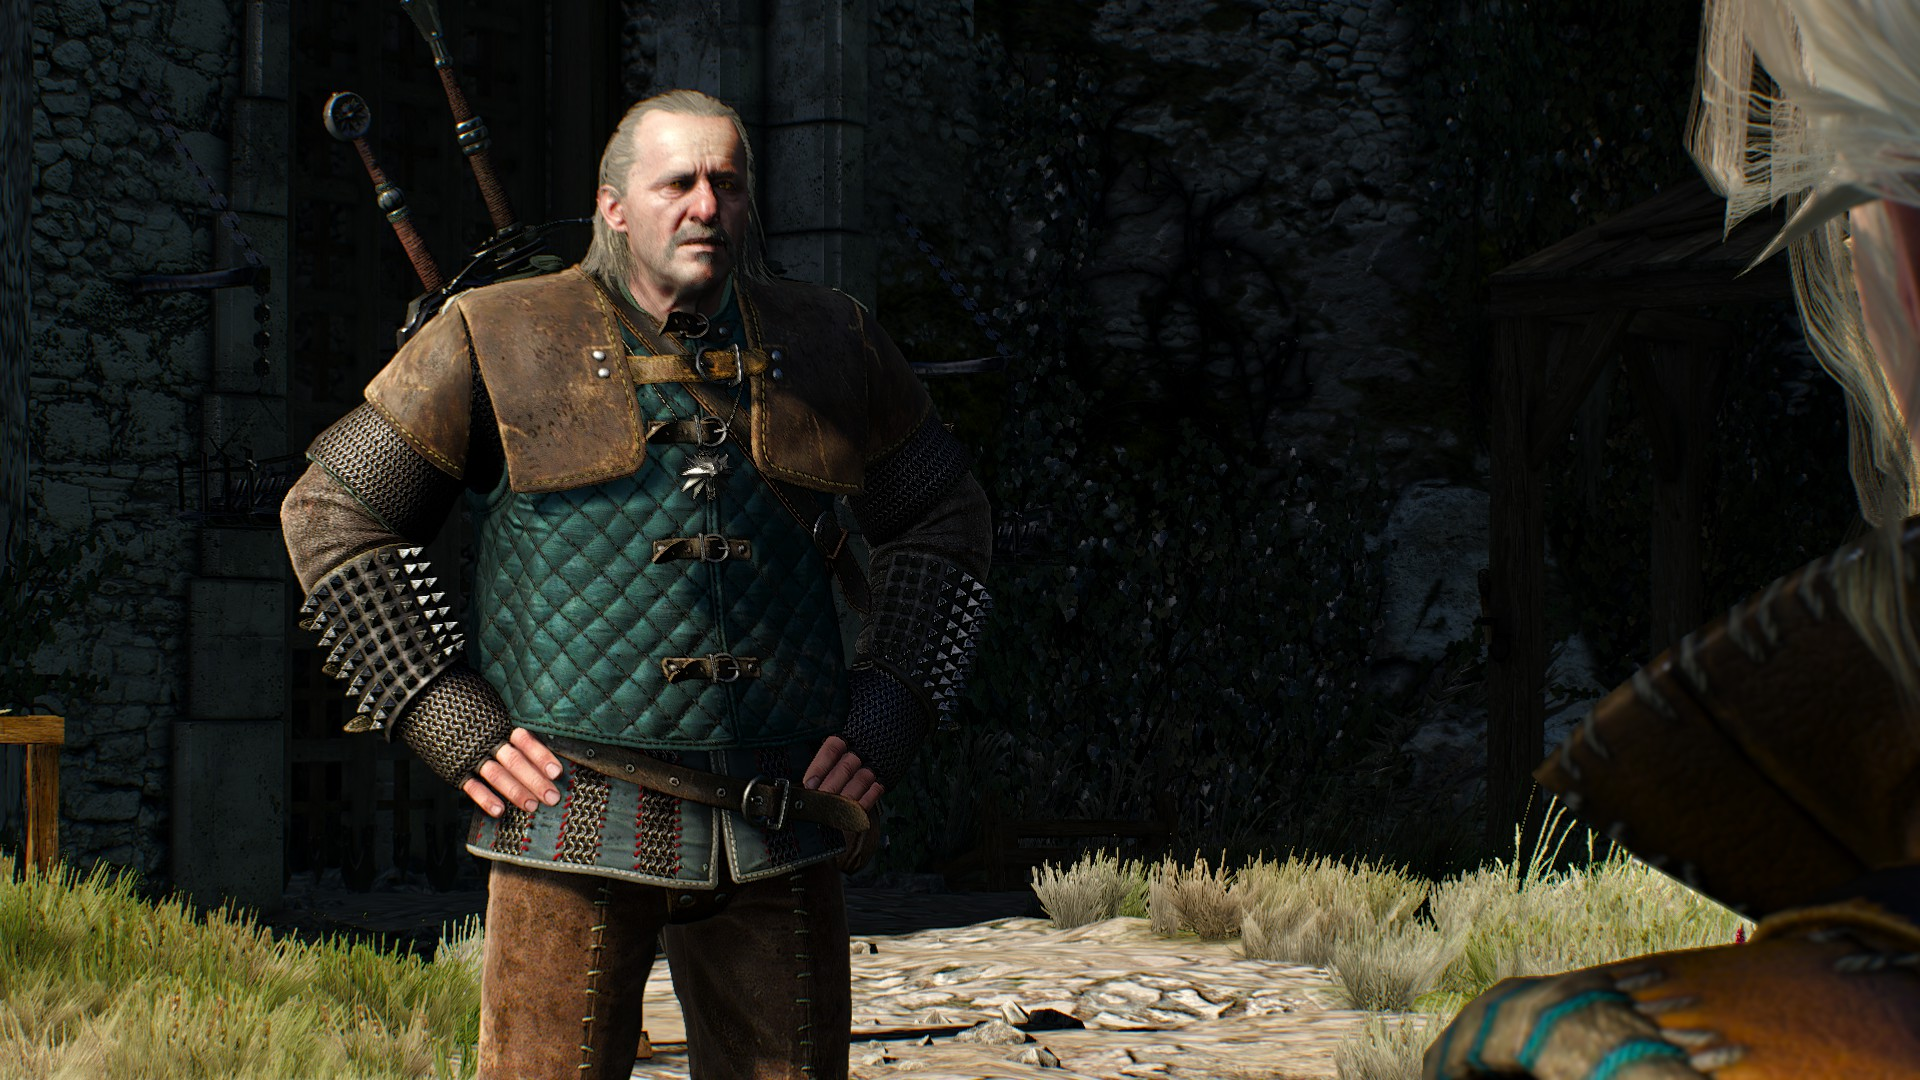 20180825164342_1.jpg - Witcher 3: Wild Hunt, the